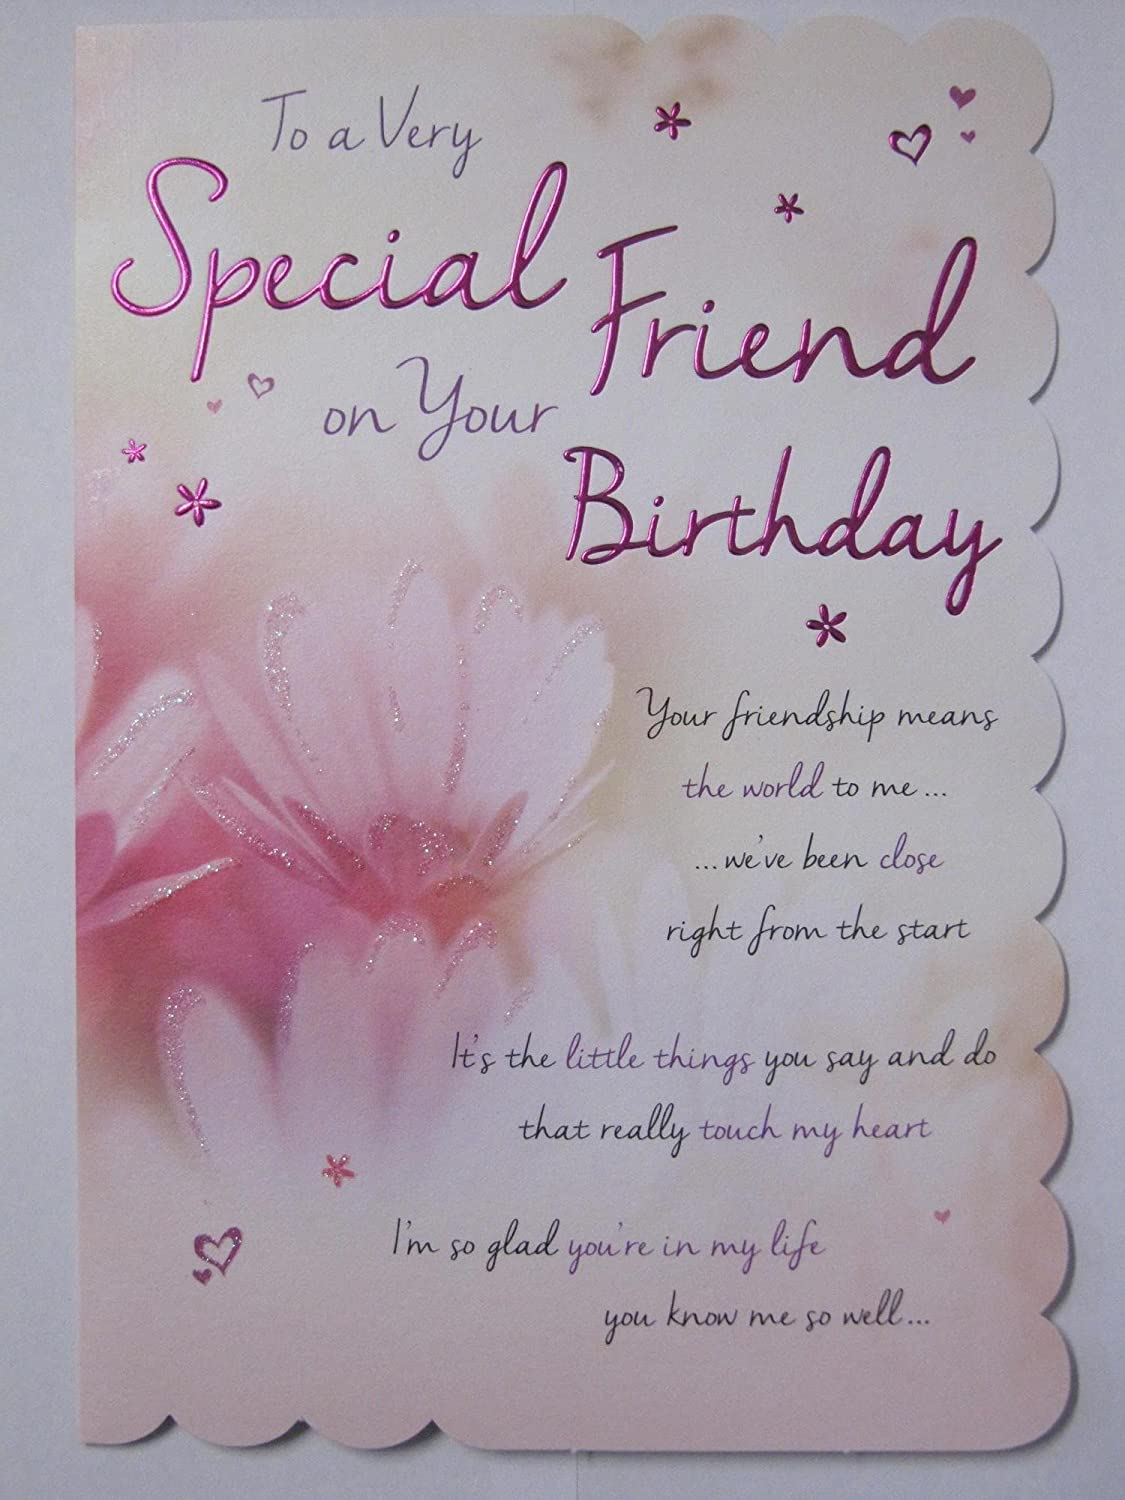 stunning top range wonderfully worded 5 verse very special friend birthday card amazoncouk kitchen home - Special Birthday Cards